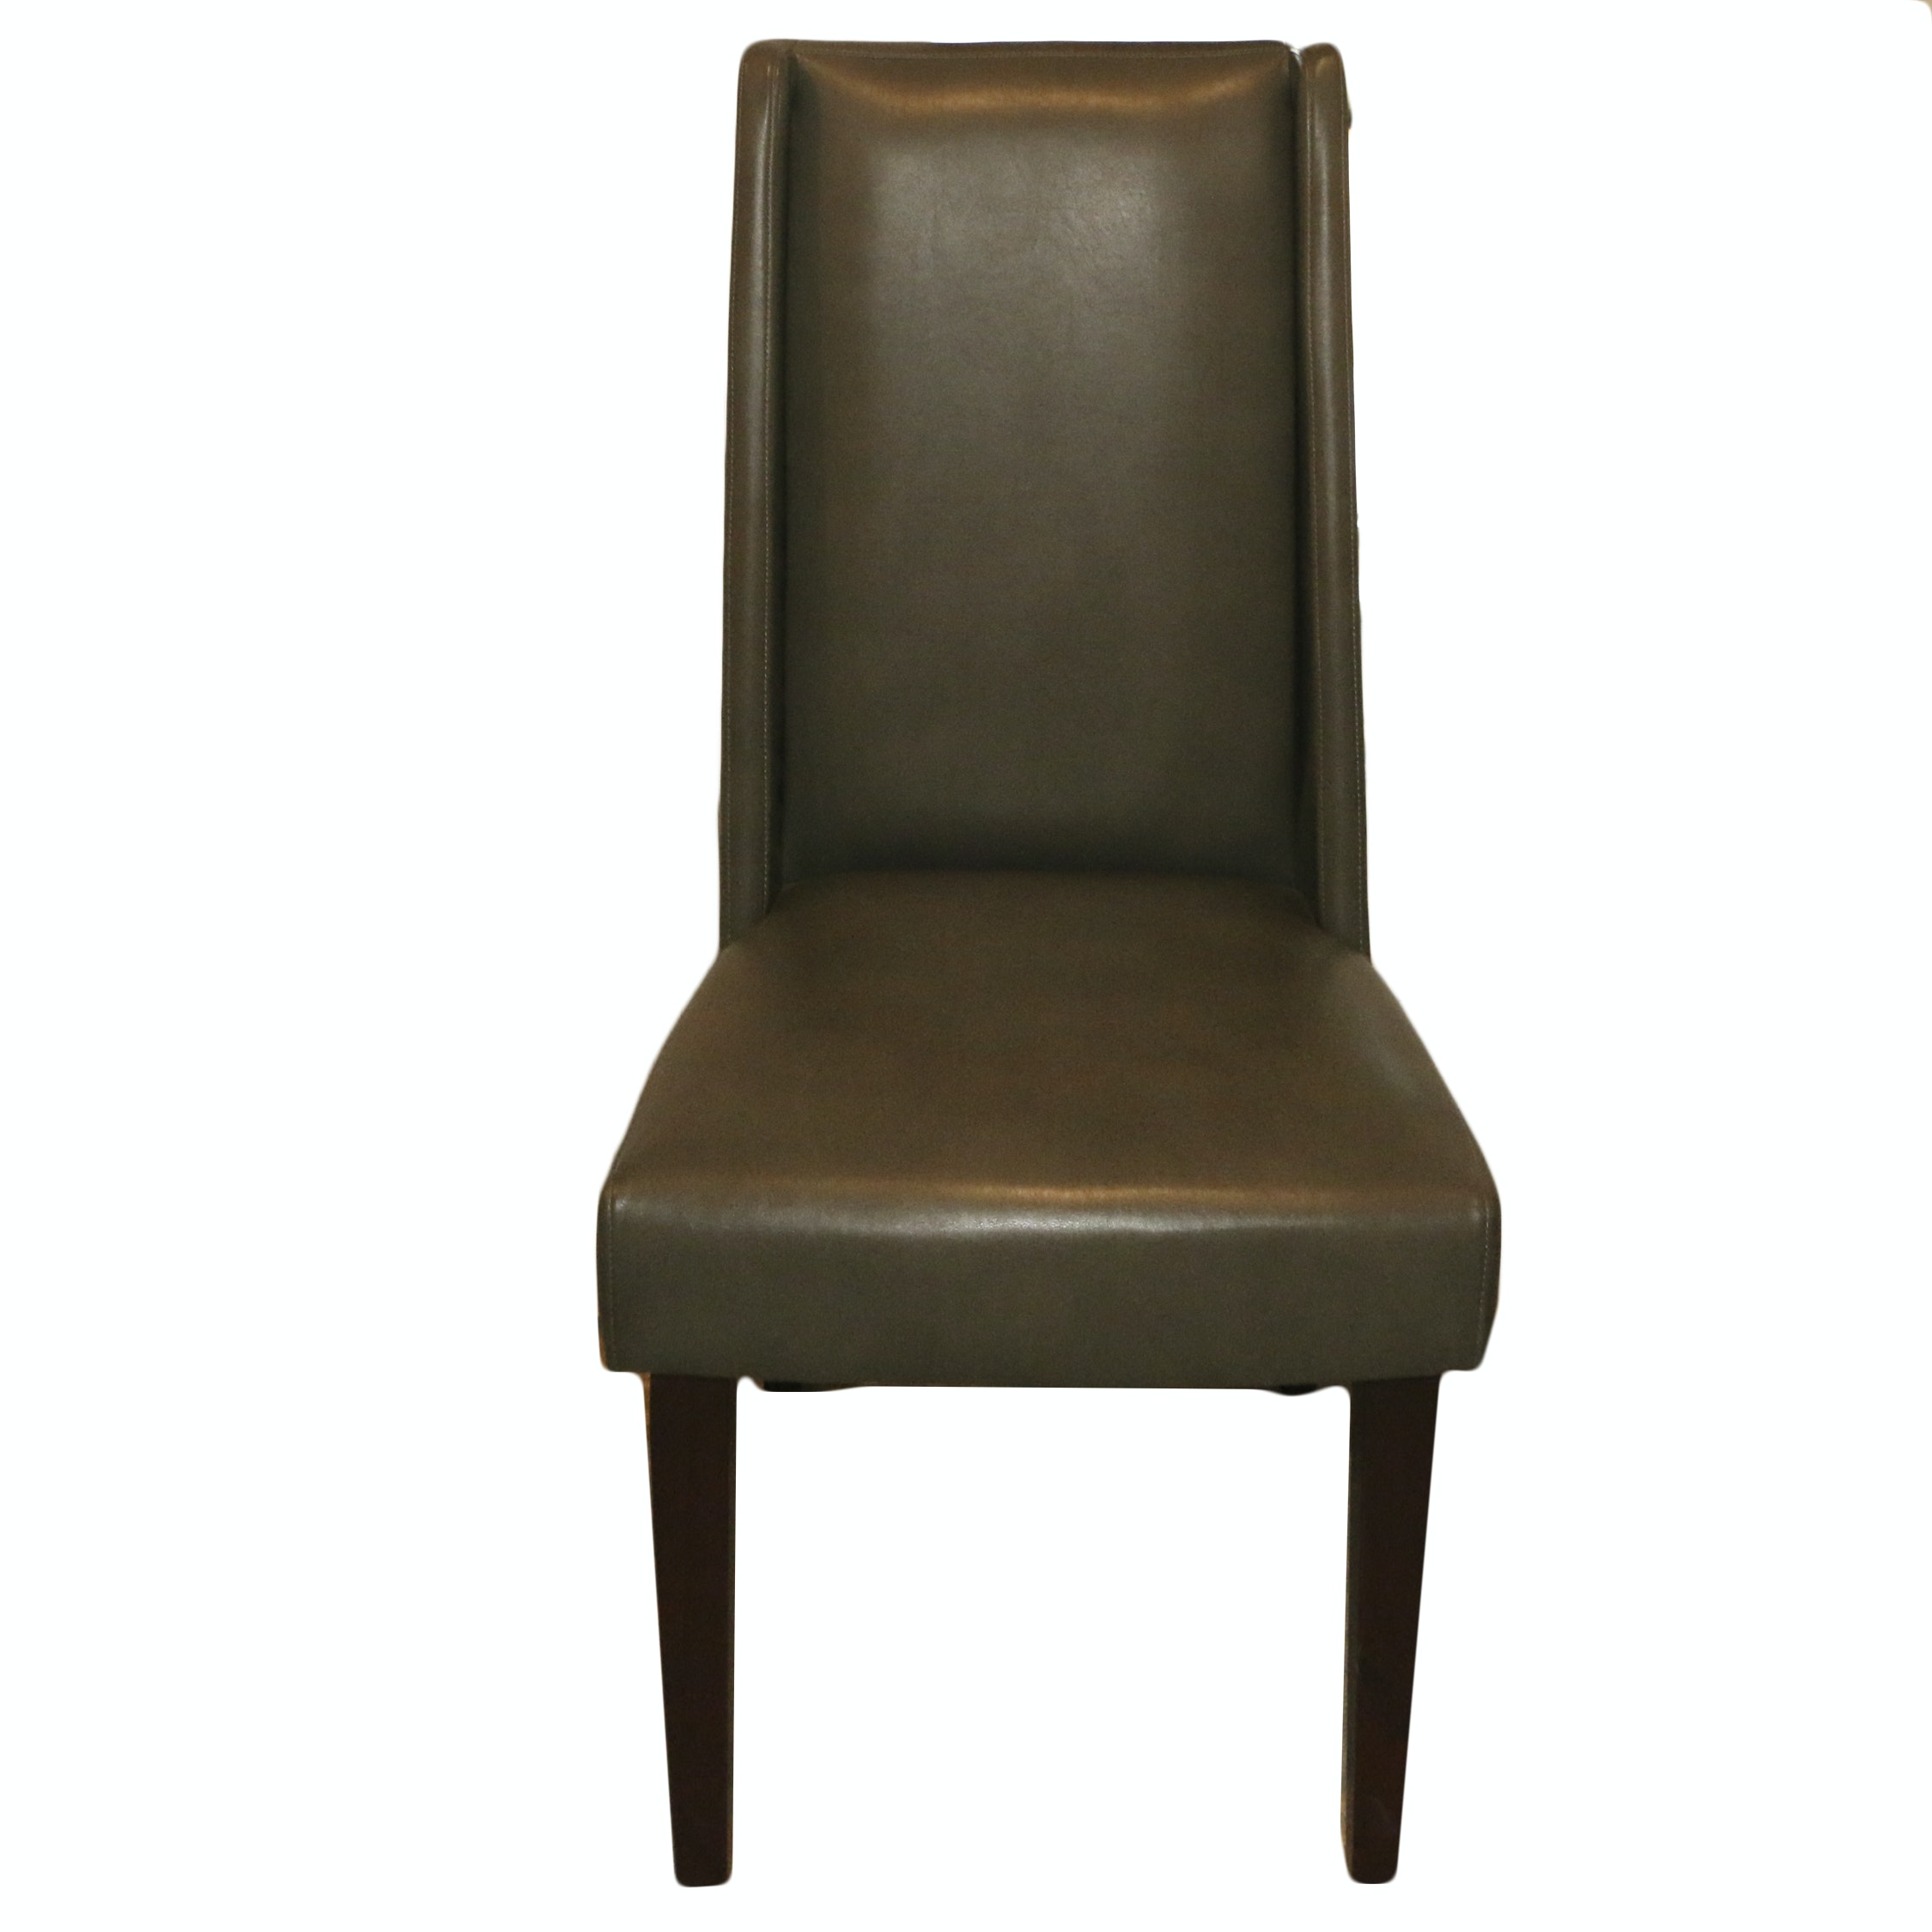 Leather Upholstered Armless Chair, 21st Century